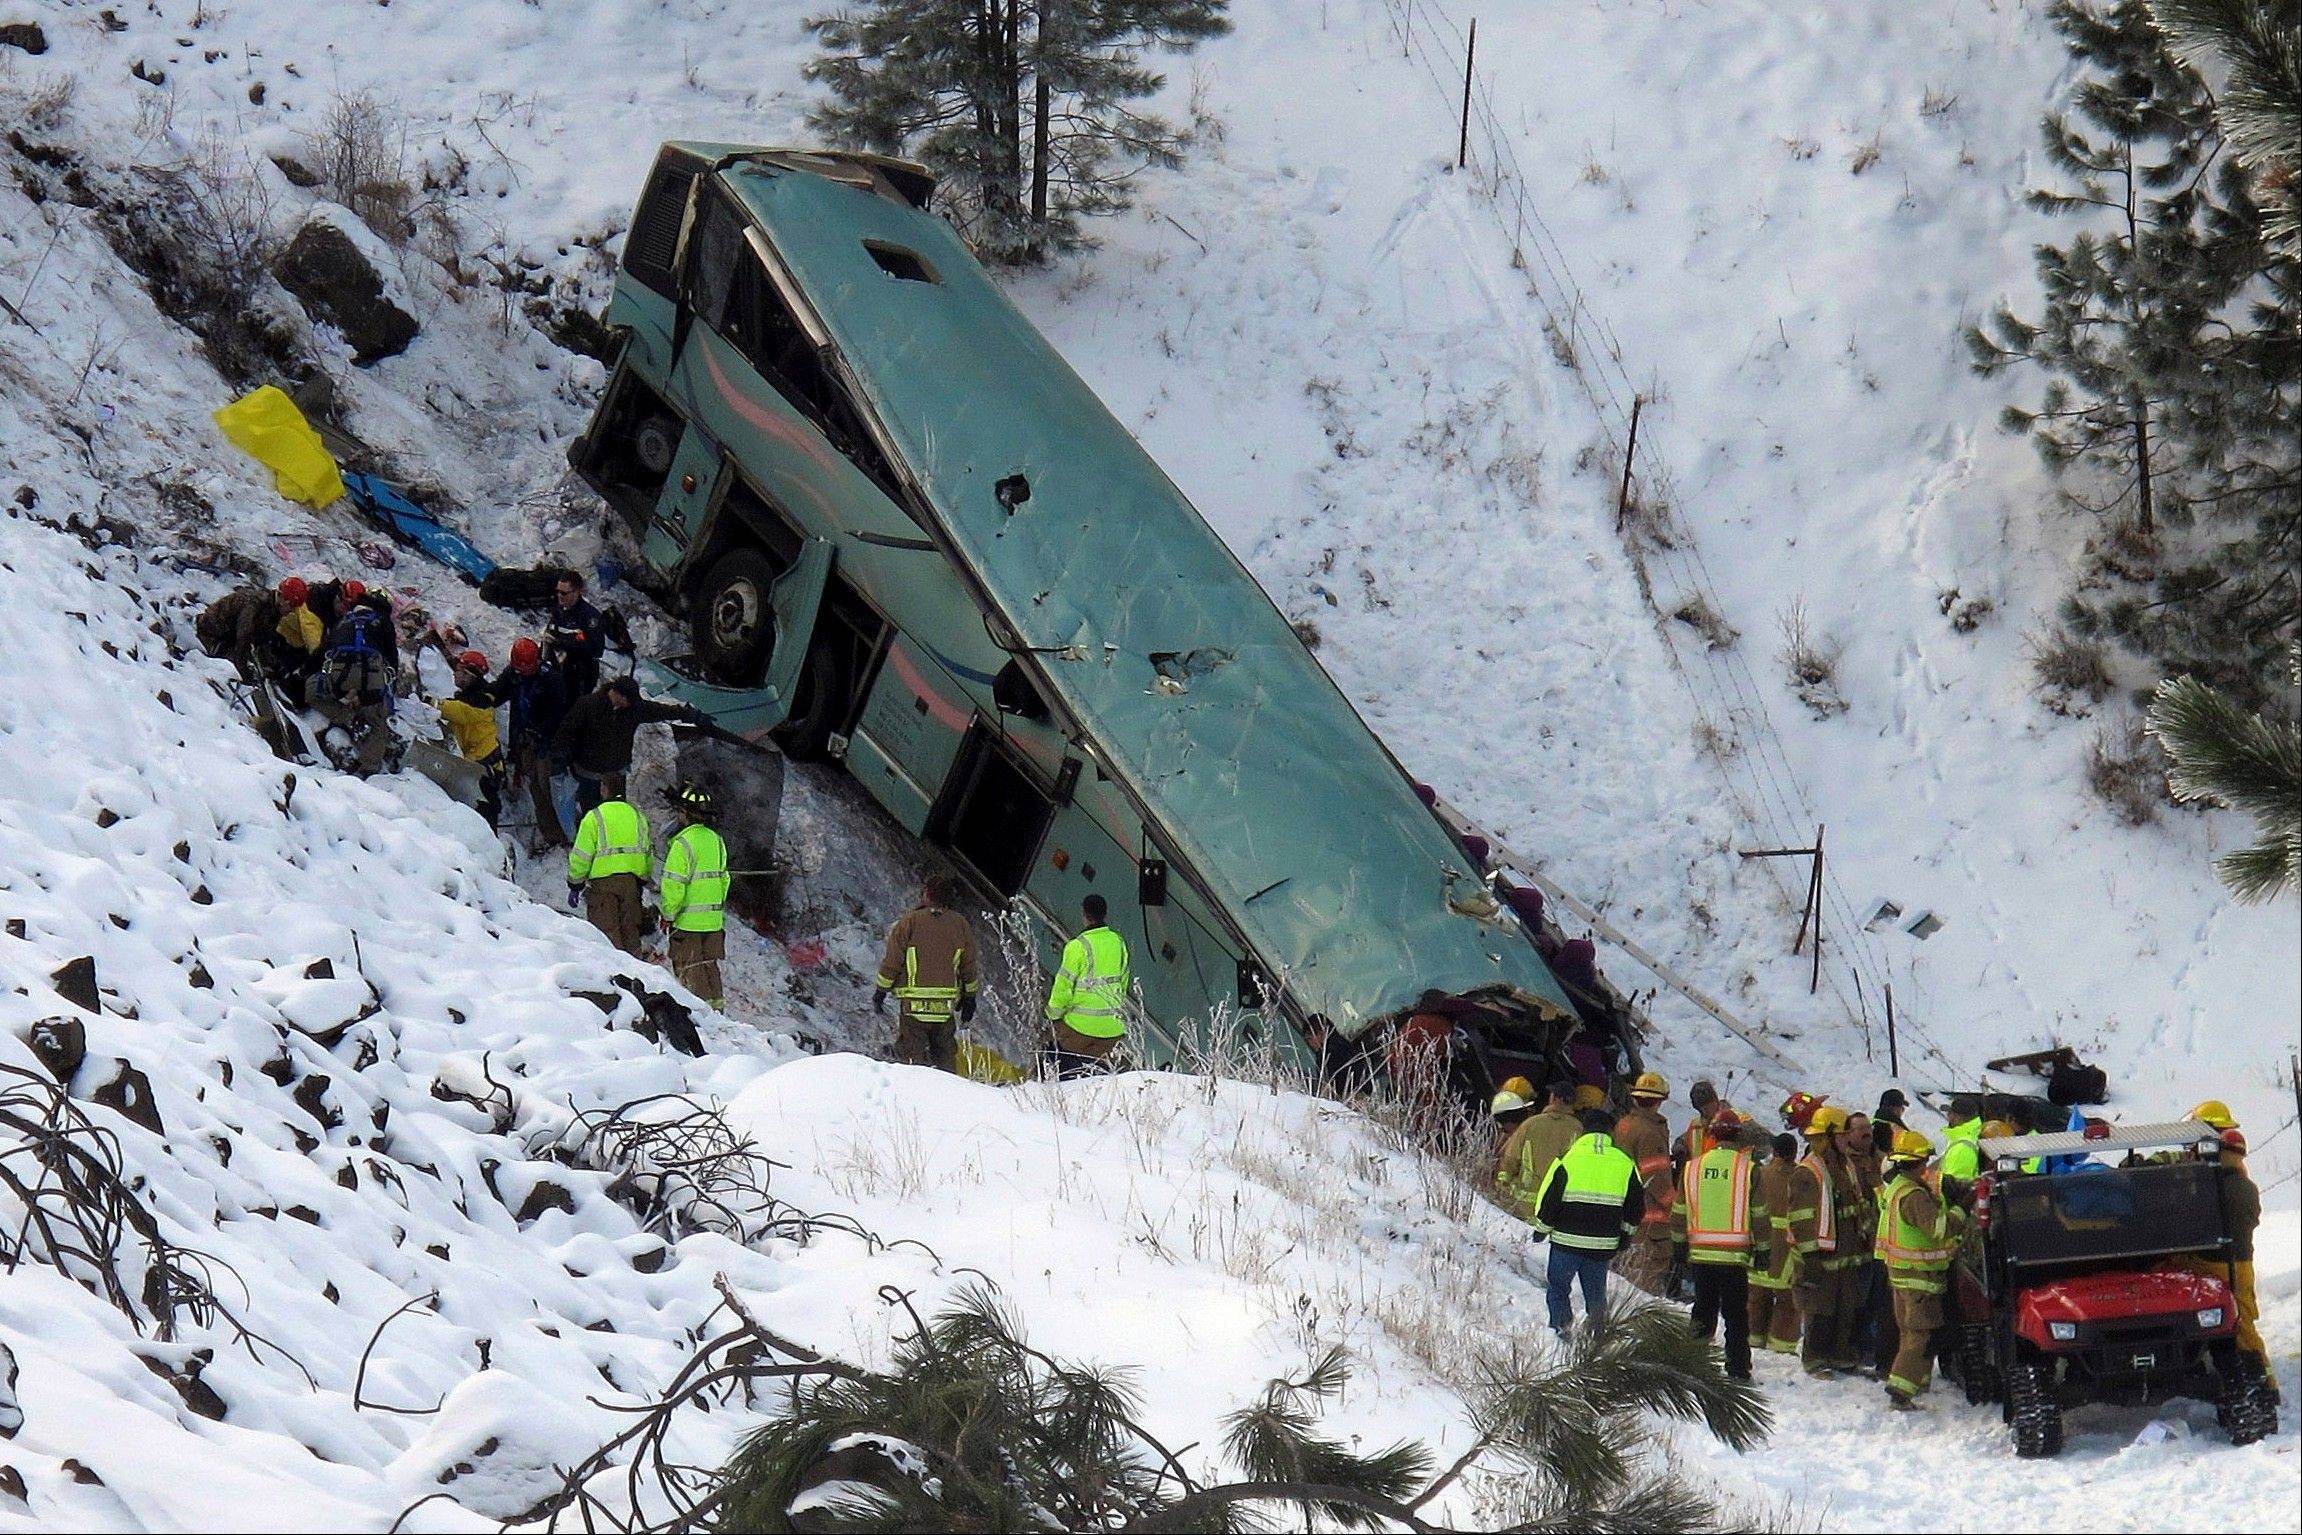 Emergency personnel respond to the scene of a multiple-fatality accident Sunday after a tour bus careened through a guardrail along an icy highway and fell several hundred feet down a steep embankment about 15 miles east of Pendleton, Ore., authorities said.